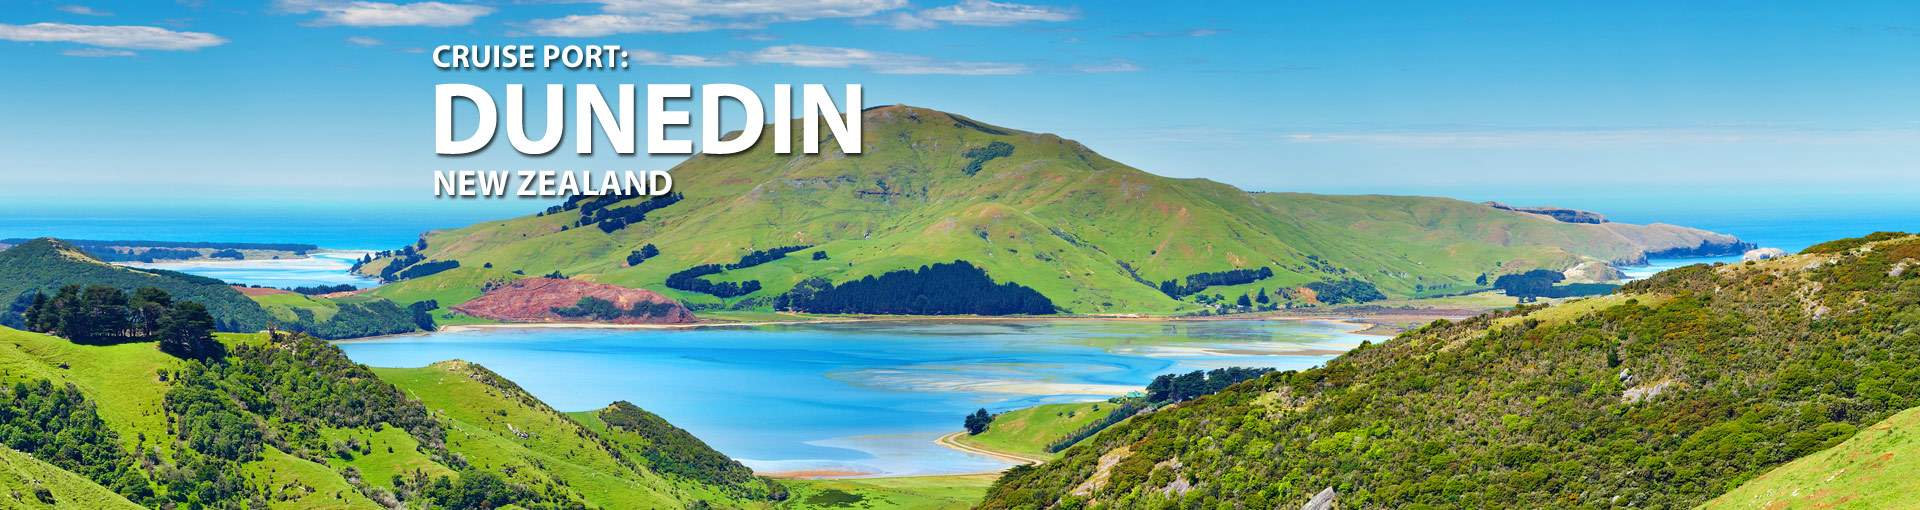 Cruises from Dunedin, New Zealand